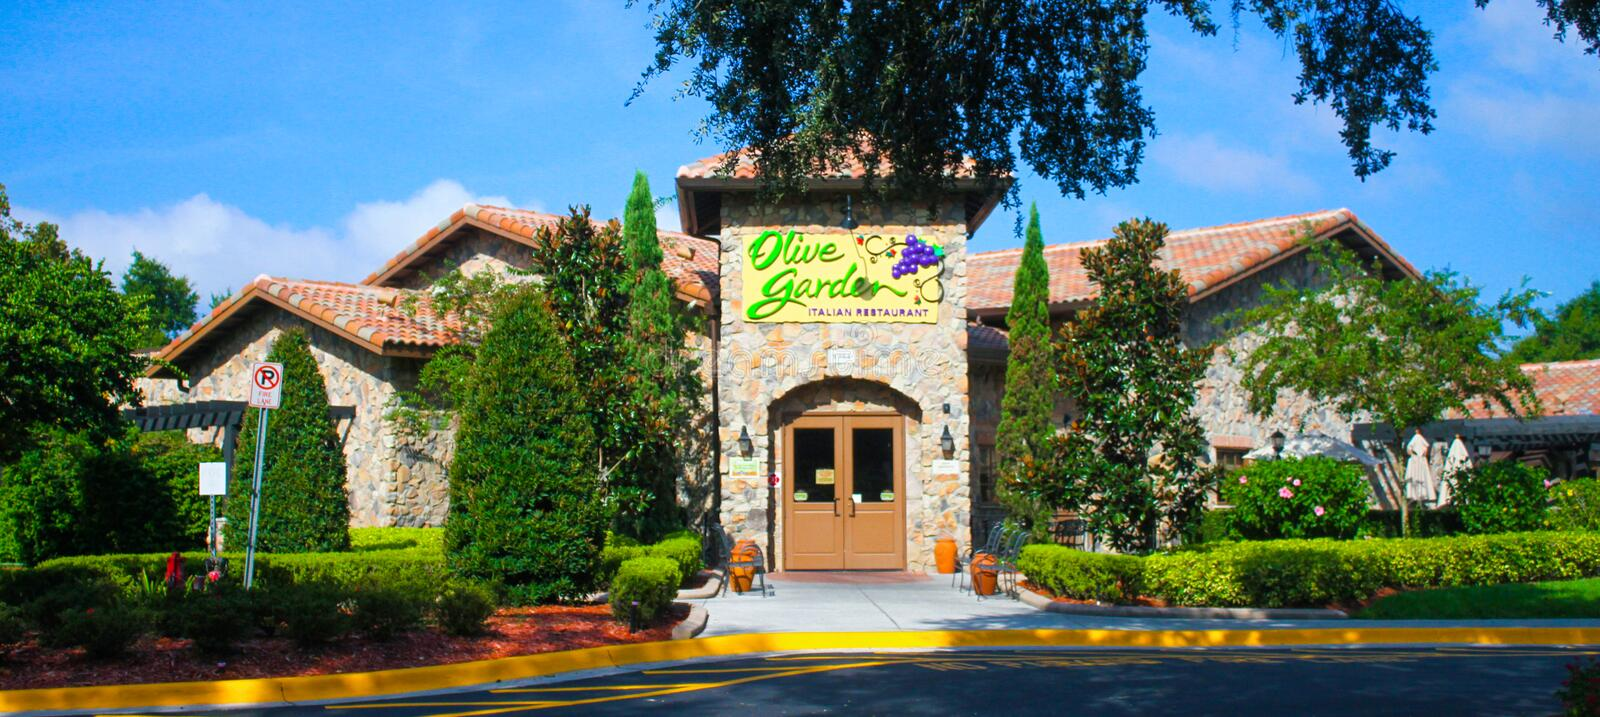 Olive Garden, International Drive Orlando, Florida Editorial Photo ...